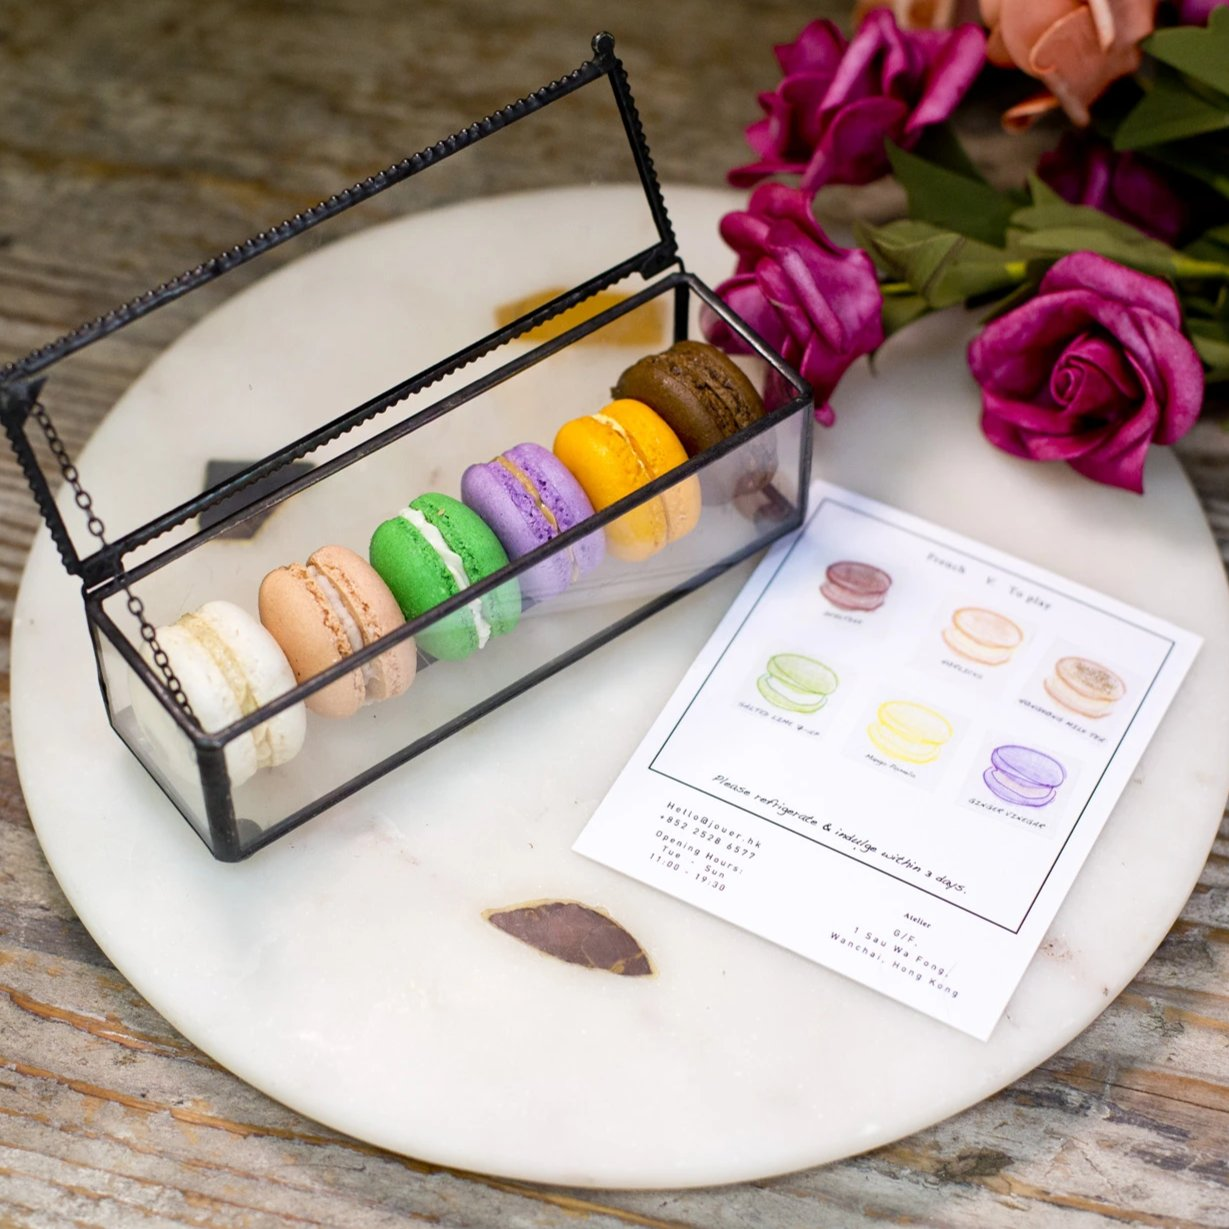 HK Retro Flavours Macaron Set in Glass Box (6pc)